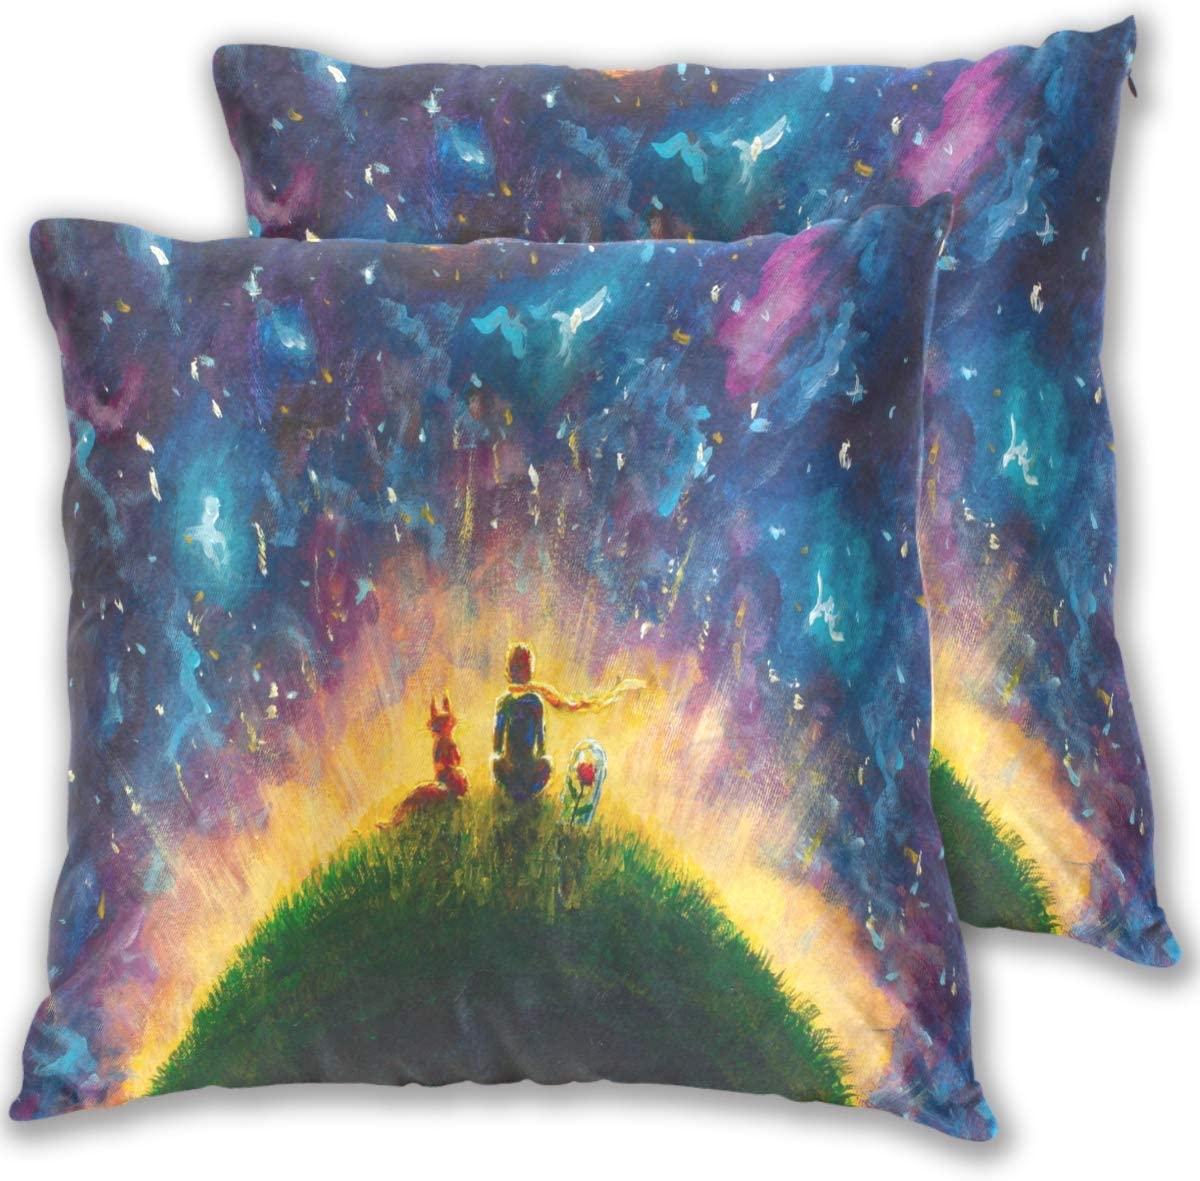 Throw Pillow Cover 20x20 Set of 2 Little Prince and Fox Under Starry Sky with Double-Sided Printing for Home Decorative